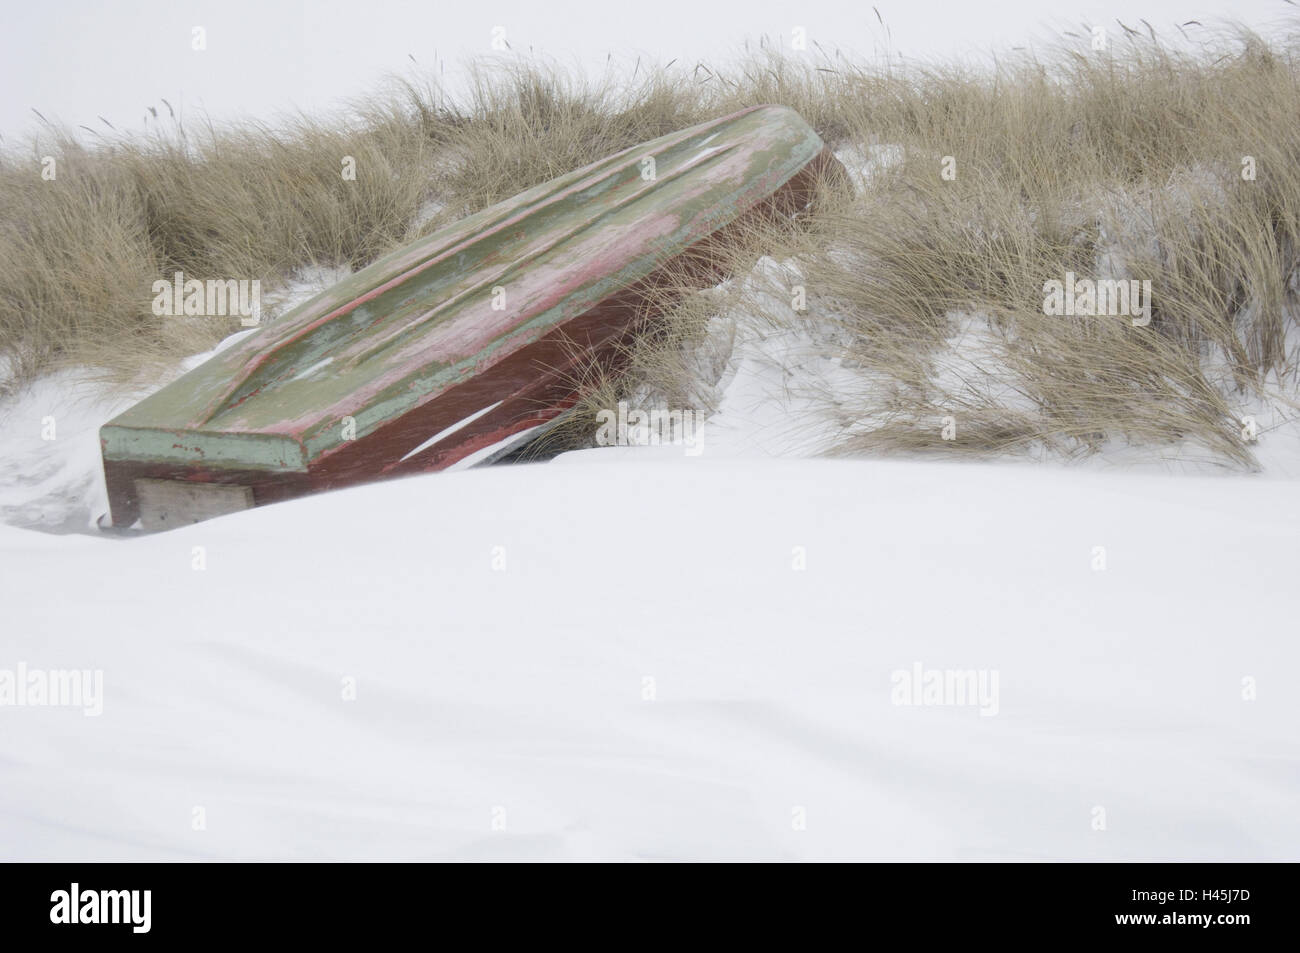 Germany, Mecklenburg-West Pomerania, island Hiddensee, fishing boat lies turned on the beach lying, winter, Stock Photo